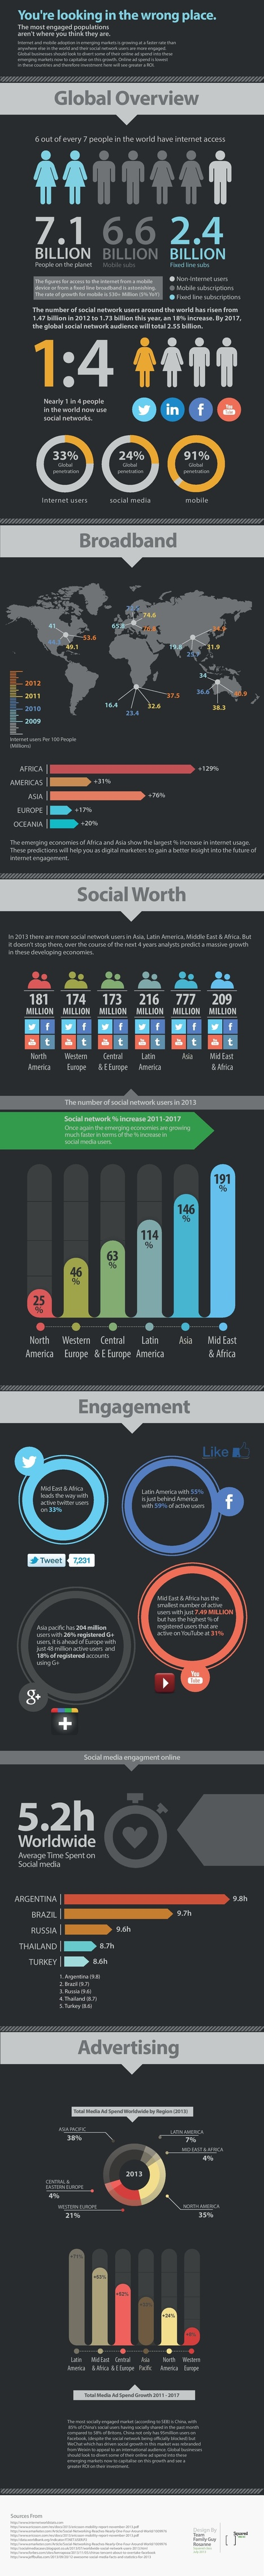 Global Internet, Mobile and Social Media Engagement and Usage Stats and Facts #INFOGRAPHIC | MarketingHits | Scoop.it